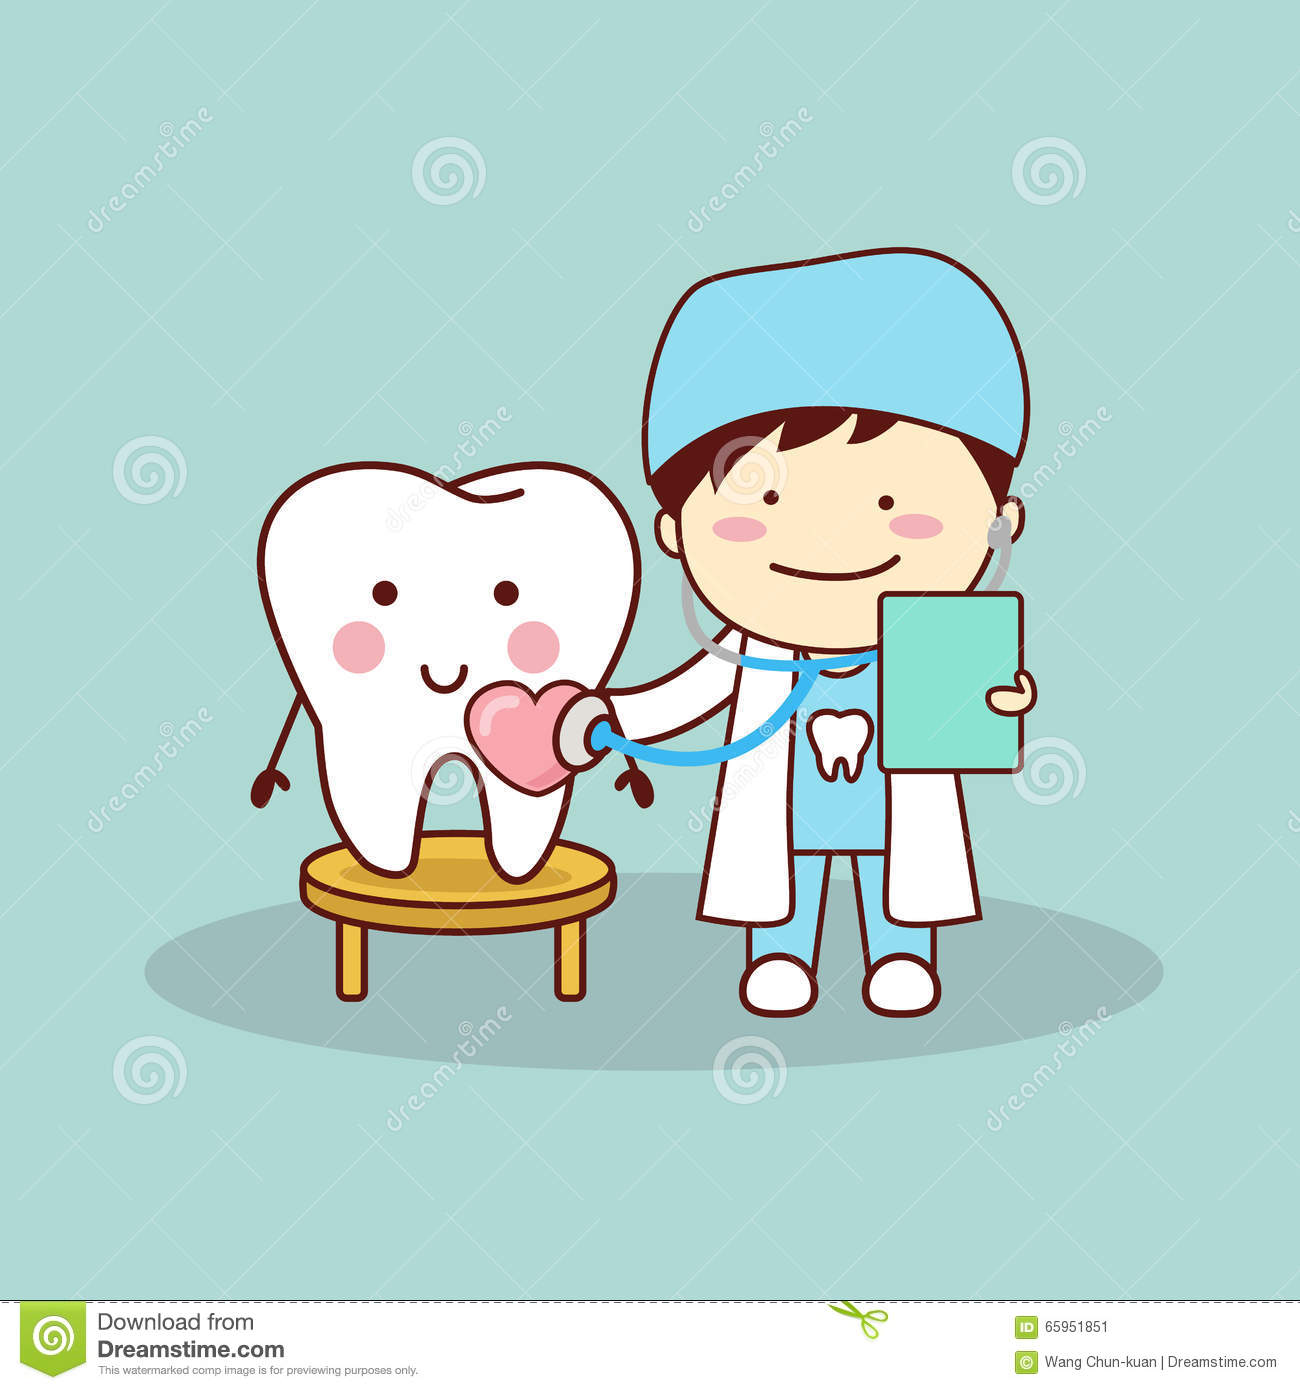 happy-cartoon-tooth-dentist-stethoscope-great-health-dental-care-concept-65951851.jpg